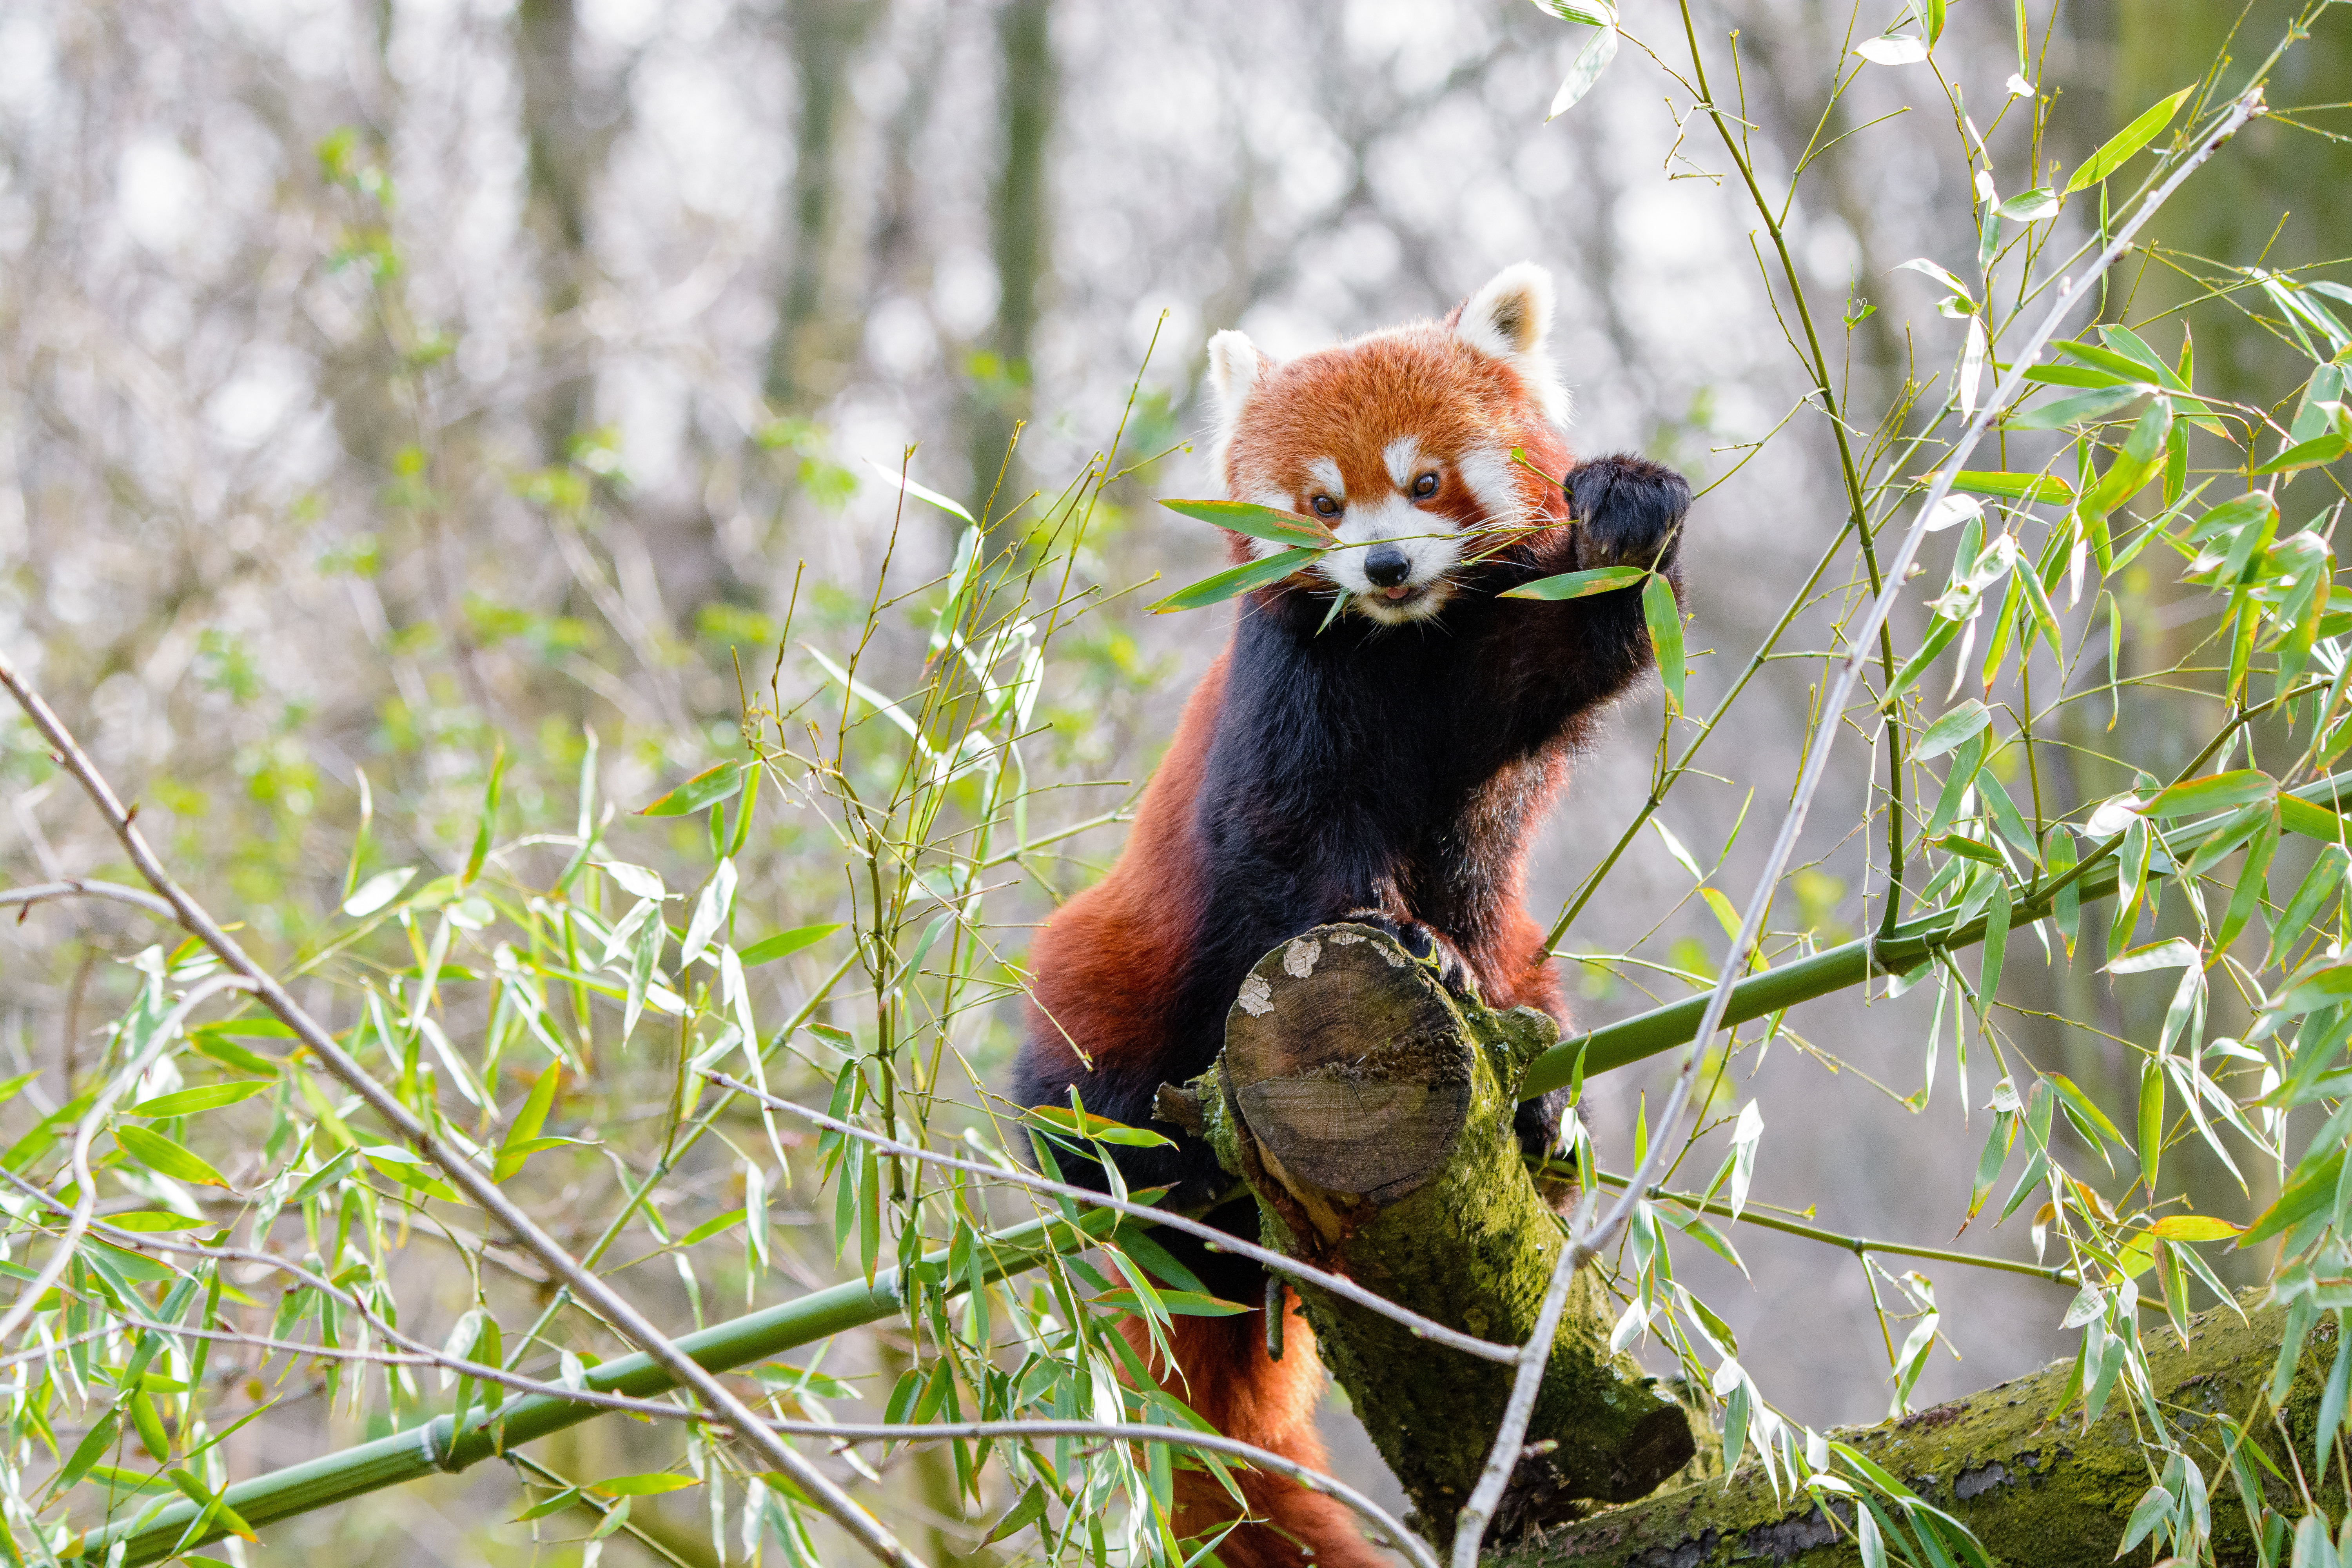 87045 download wallpaper Animals, Red Panda, Branches, Bamboo screensavers and pictures for free